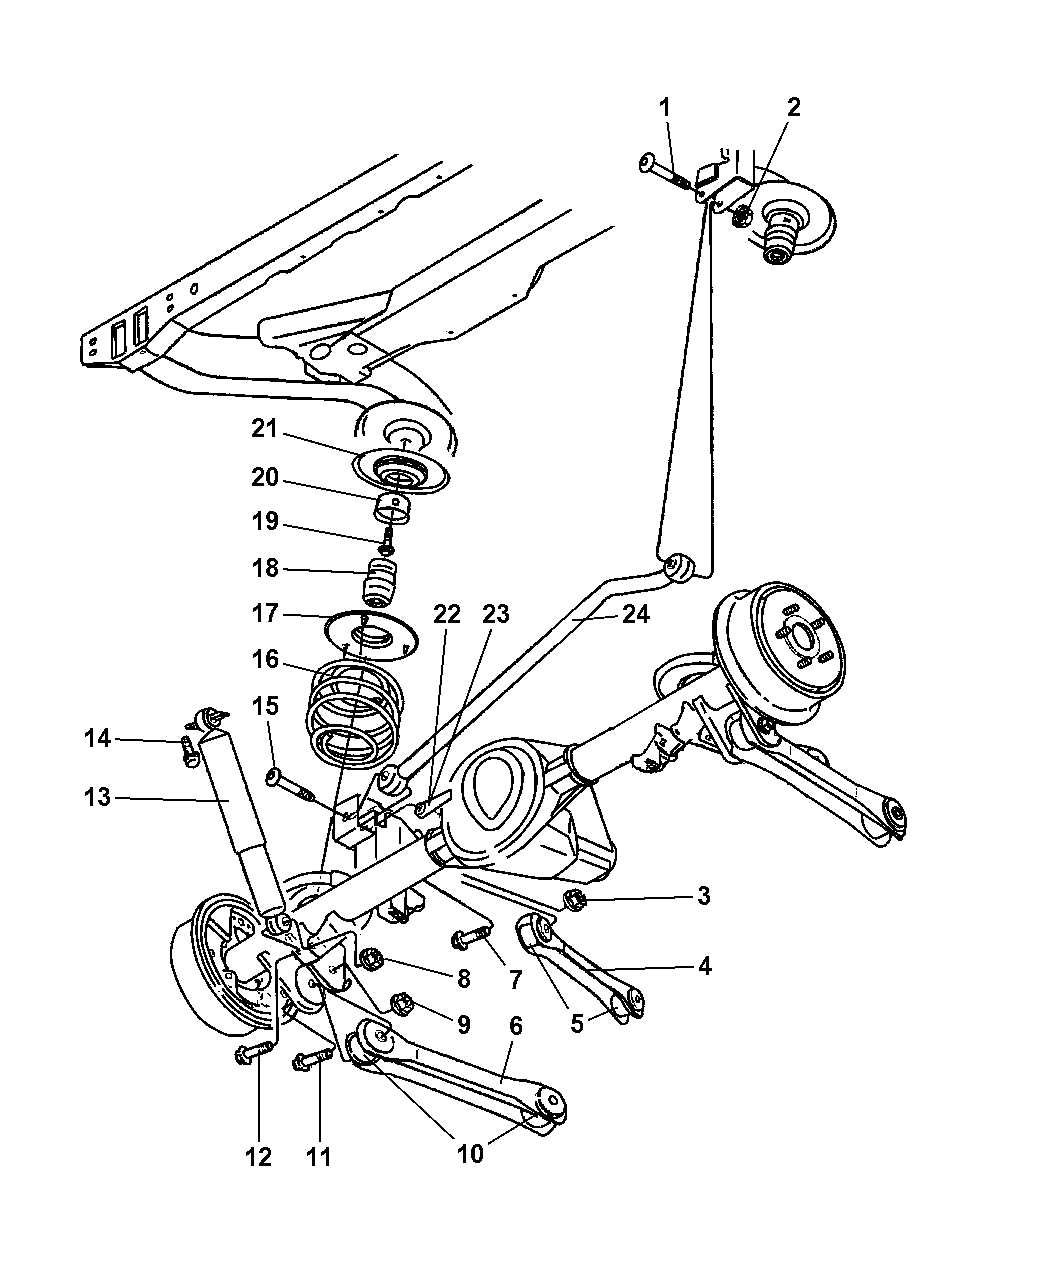 jeep suspension schematic 2004 jeep wrangler suspension - rear with shocks, springs ...